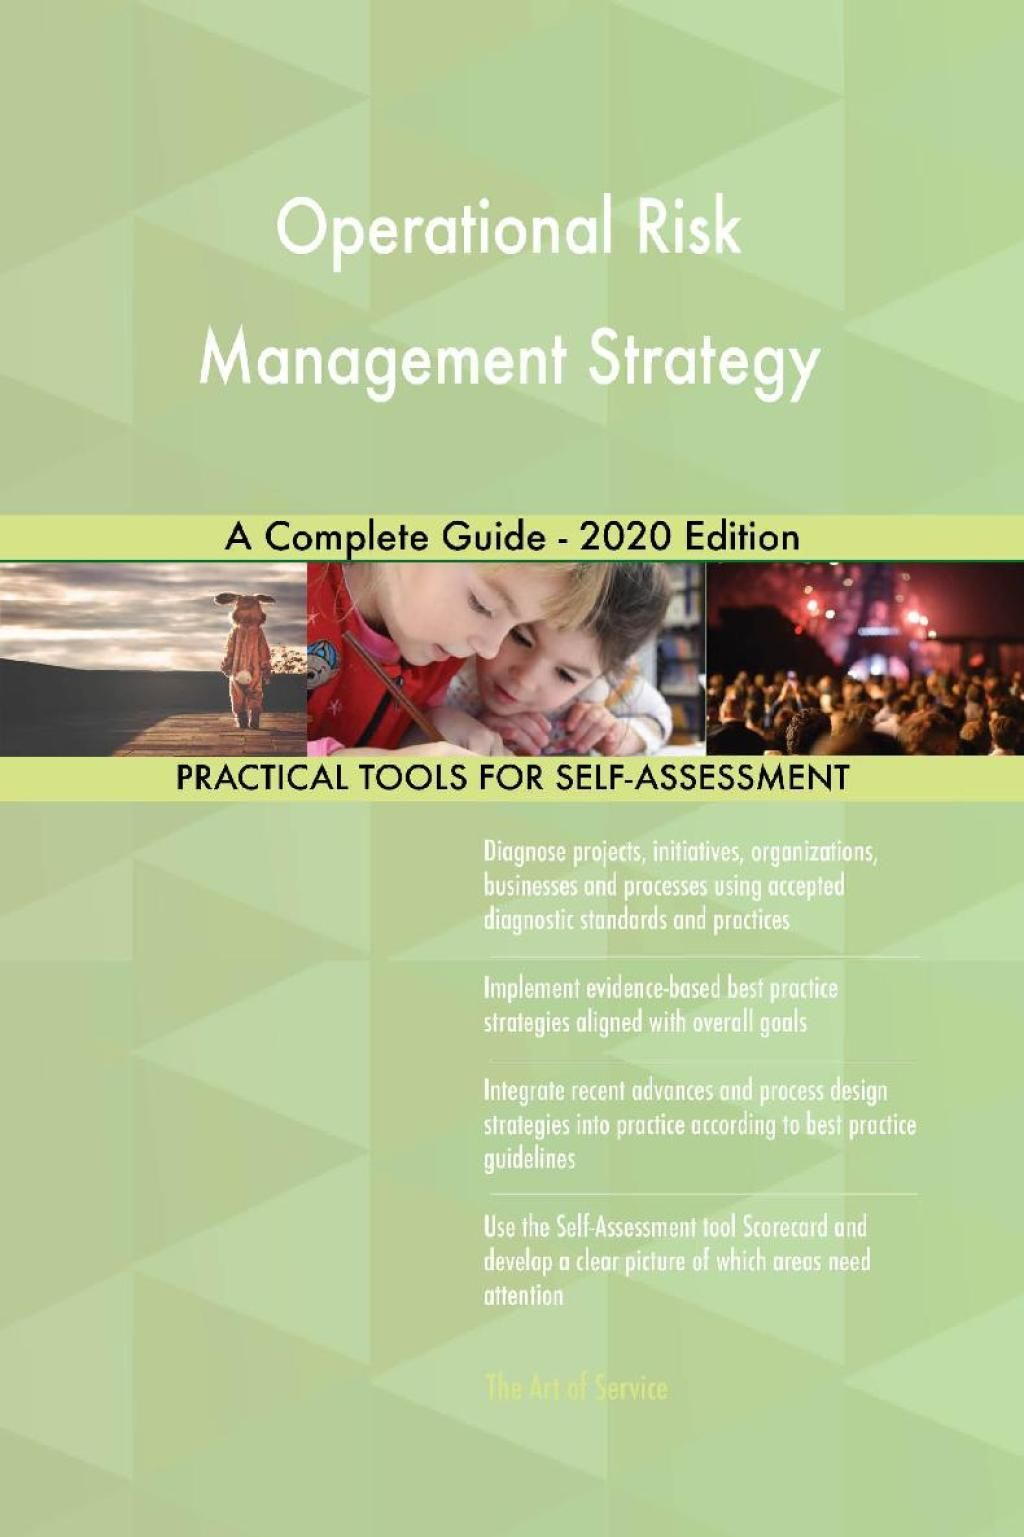 Operational Risk Management Strategy A Complete Guide